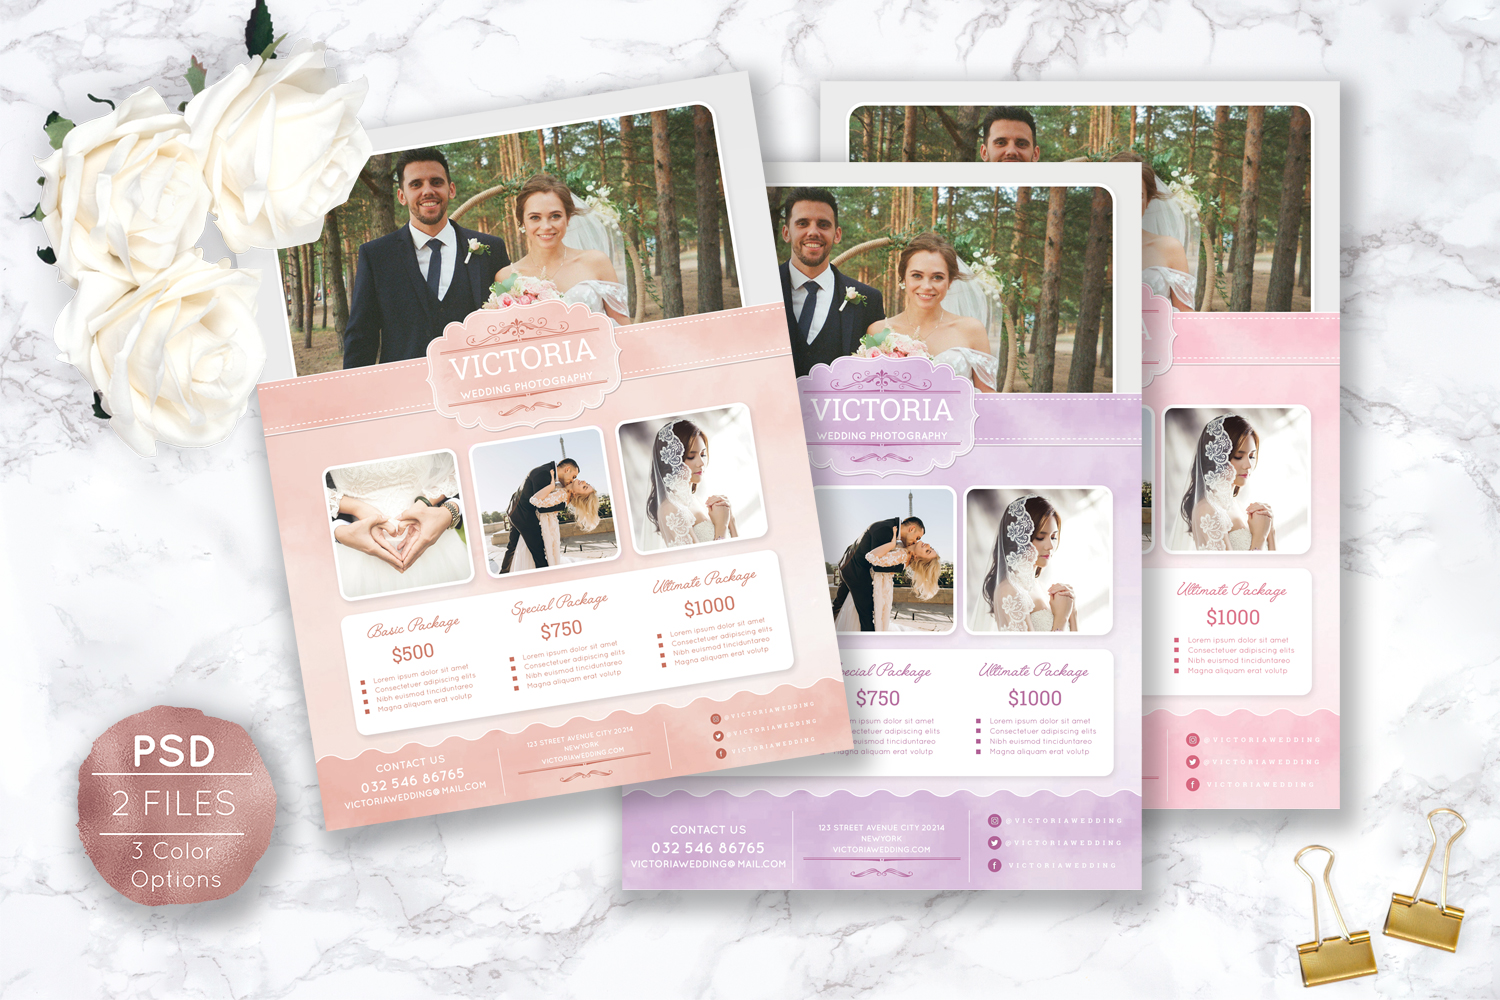 Soft Watercolor Wedding Photography Flyer example image 2